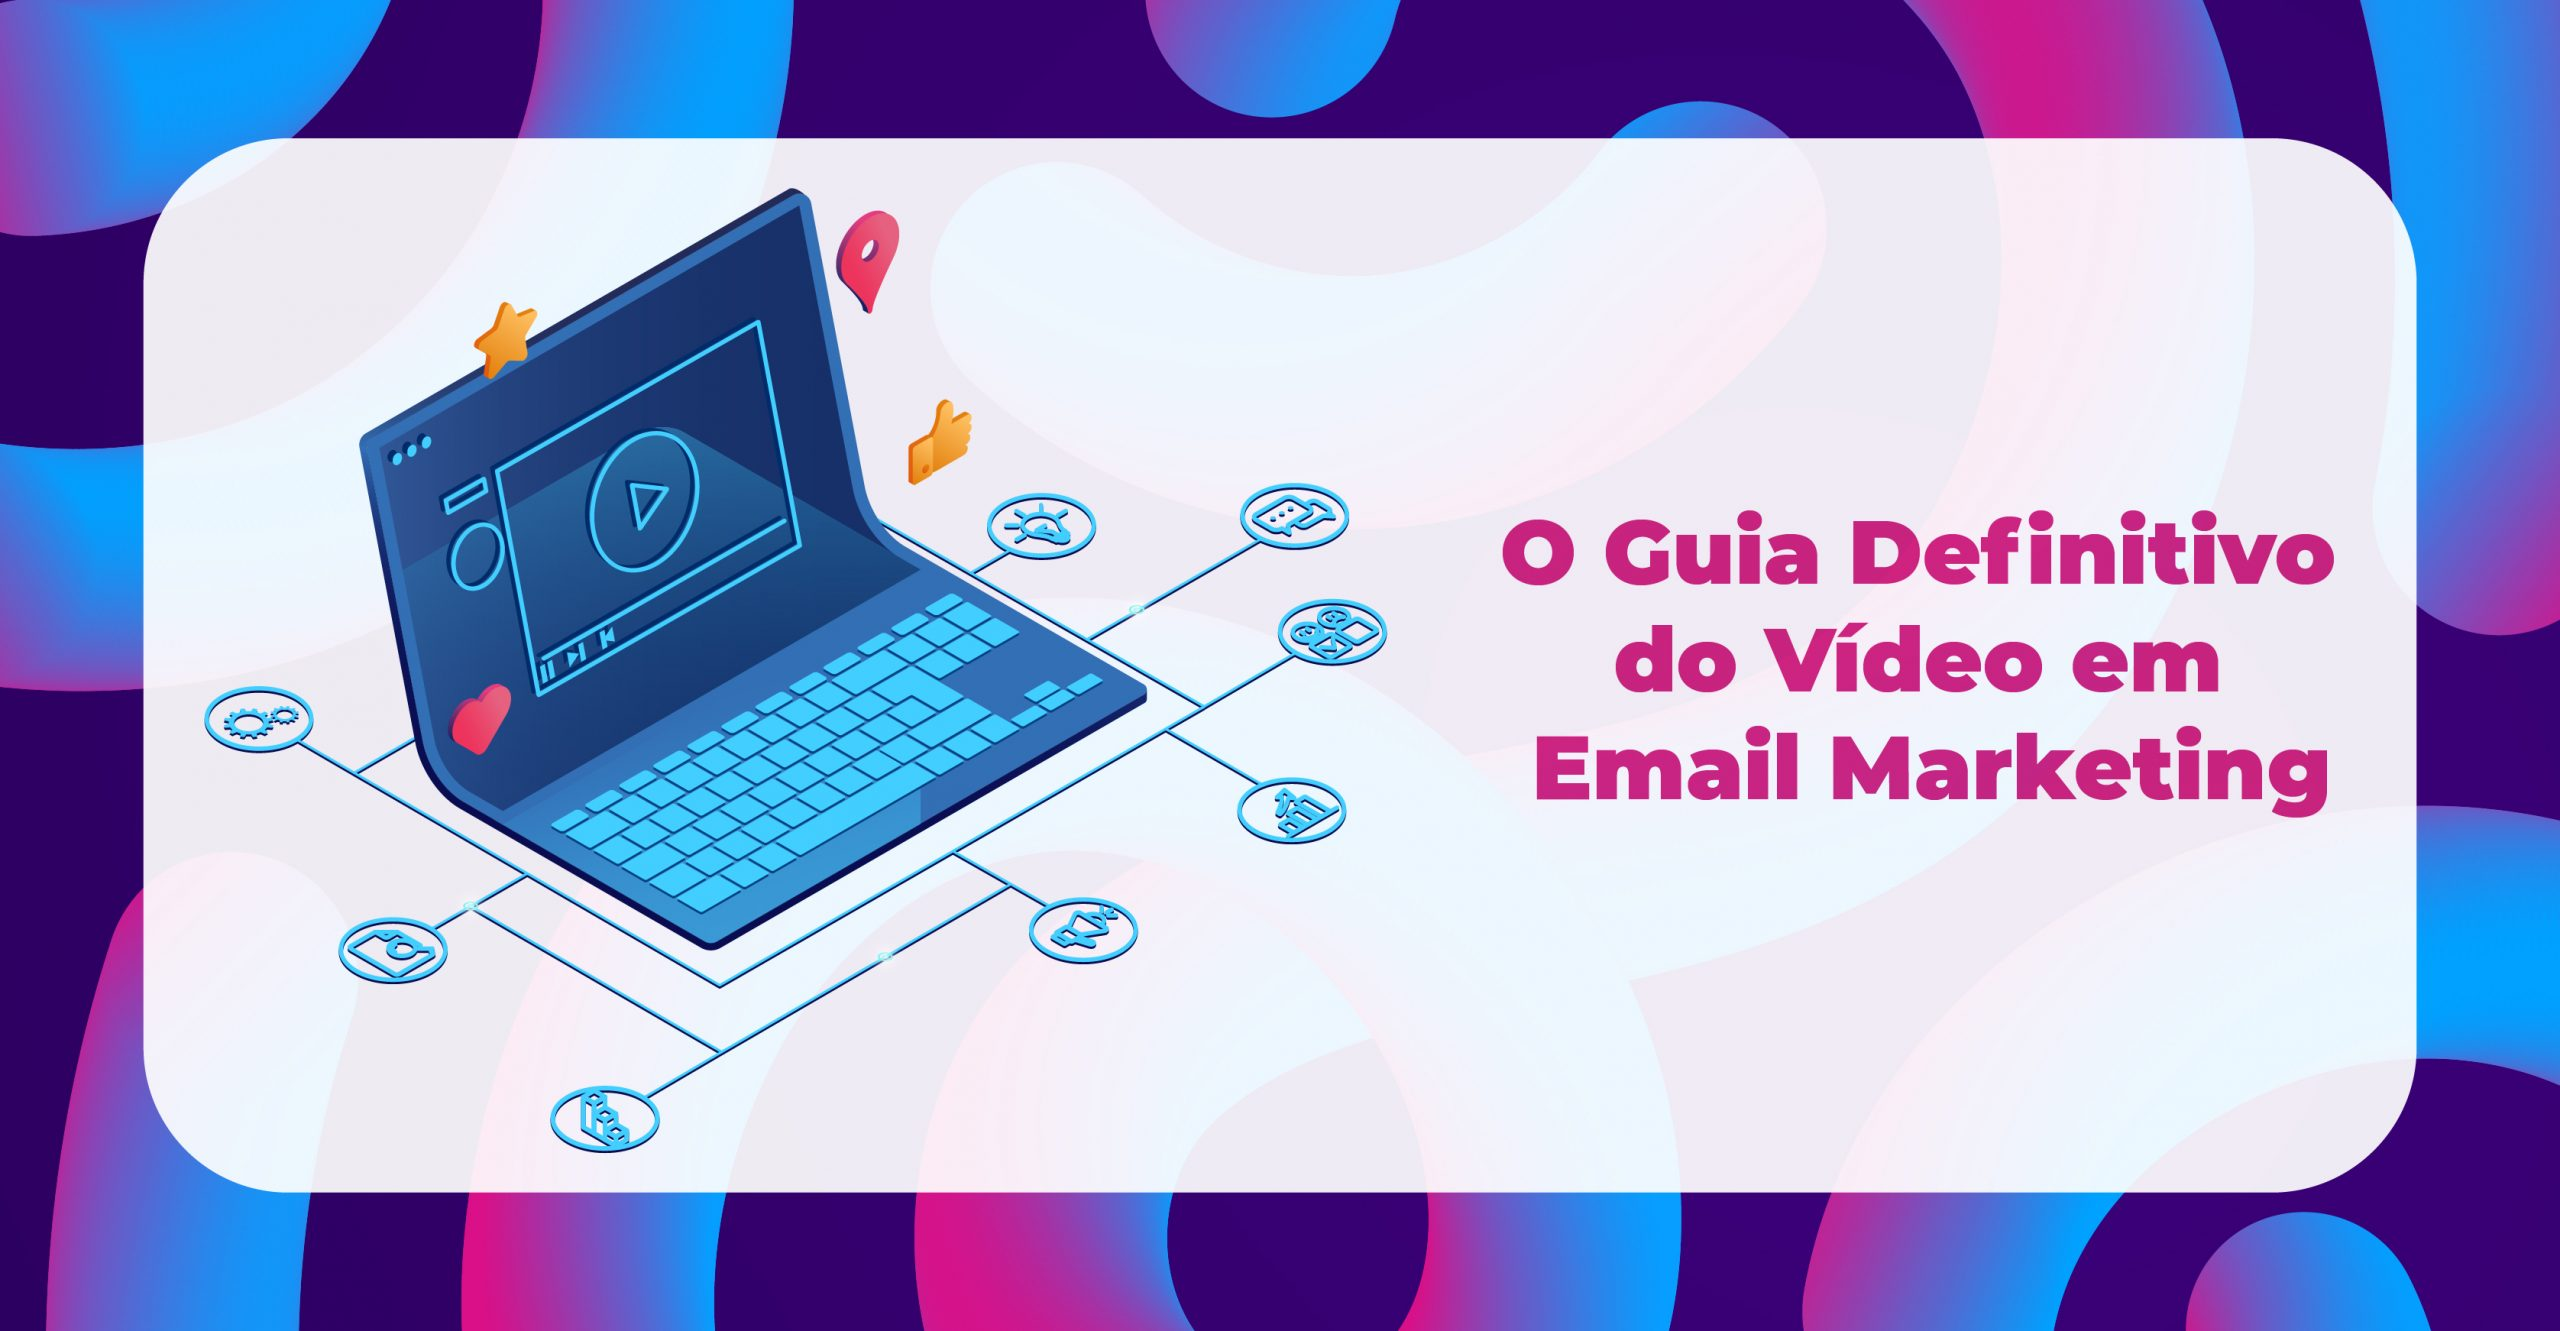 Bemyself_O Guia Definitivo do Vídeo em E-mail Marketing